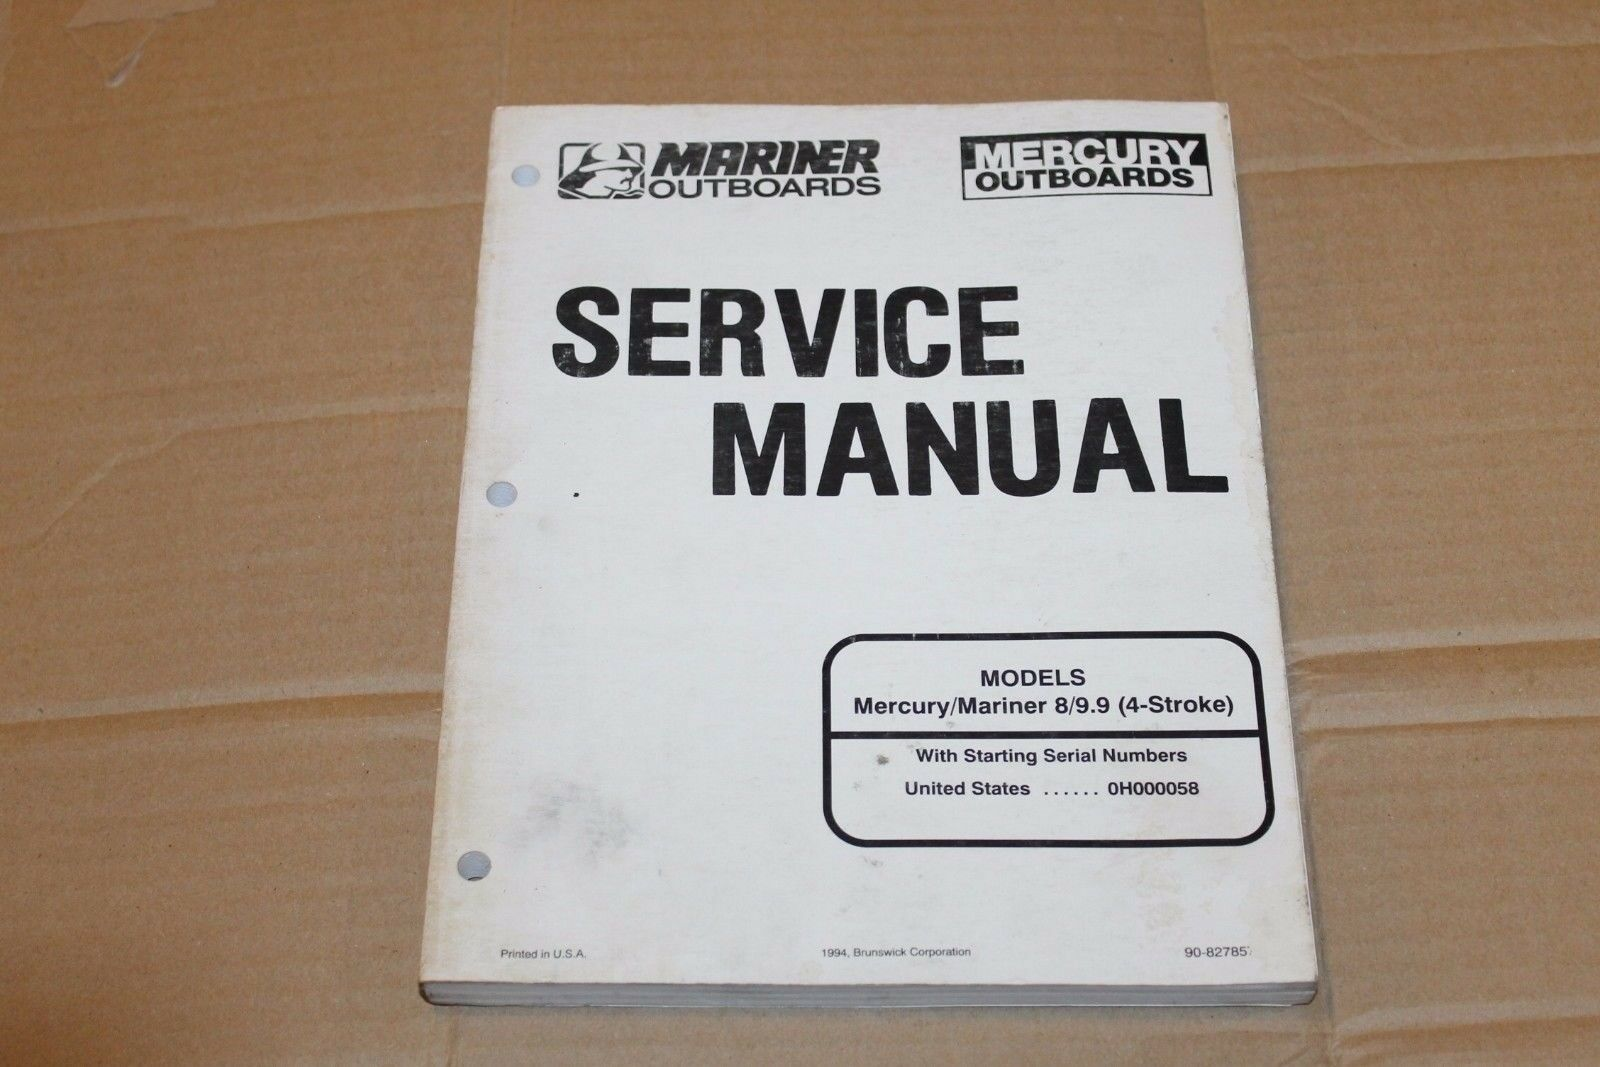 Mercury Mariner 8/9.9 9 (4-Stroke) Factory Service Manual. Starting 1 of  1Only 1 available ...